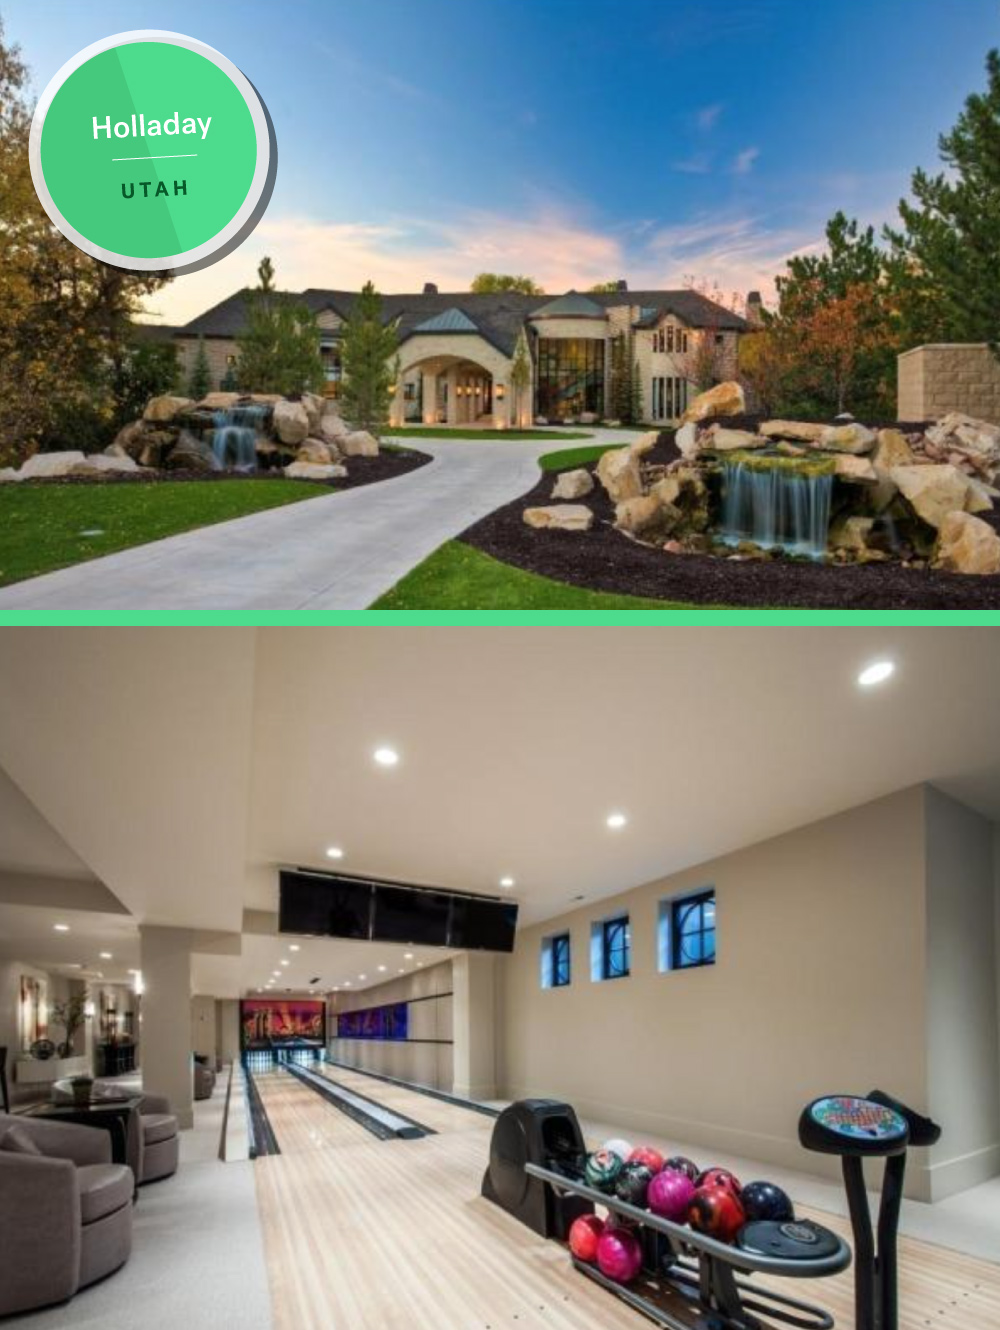 The Dude Abides: 13 Homes for Sale With Bowling Alleys - Trulia\'s ...